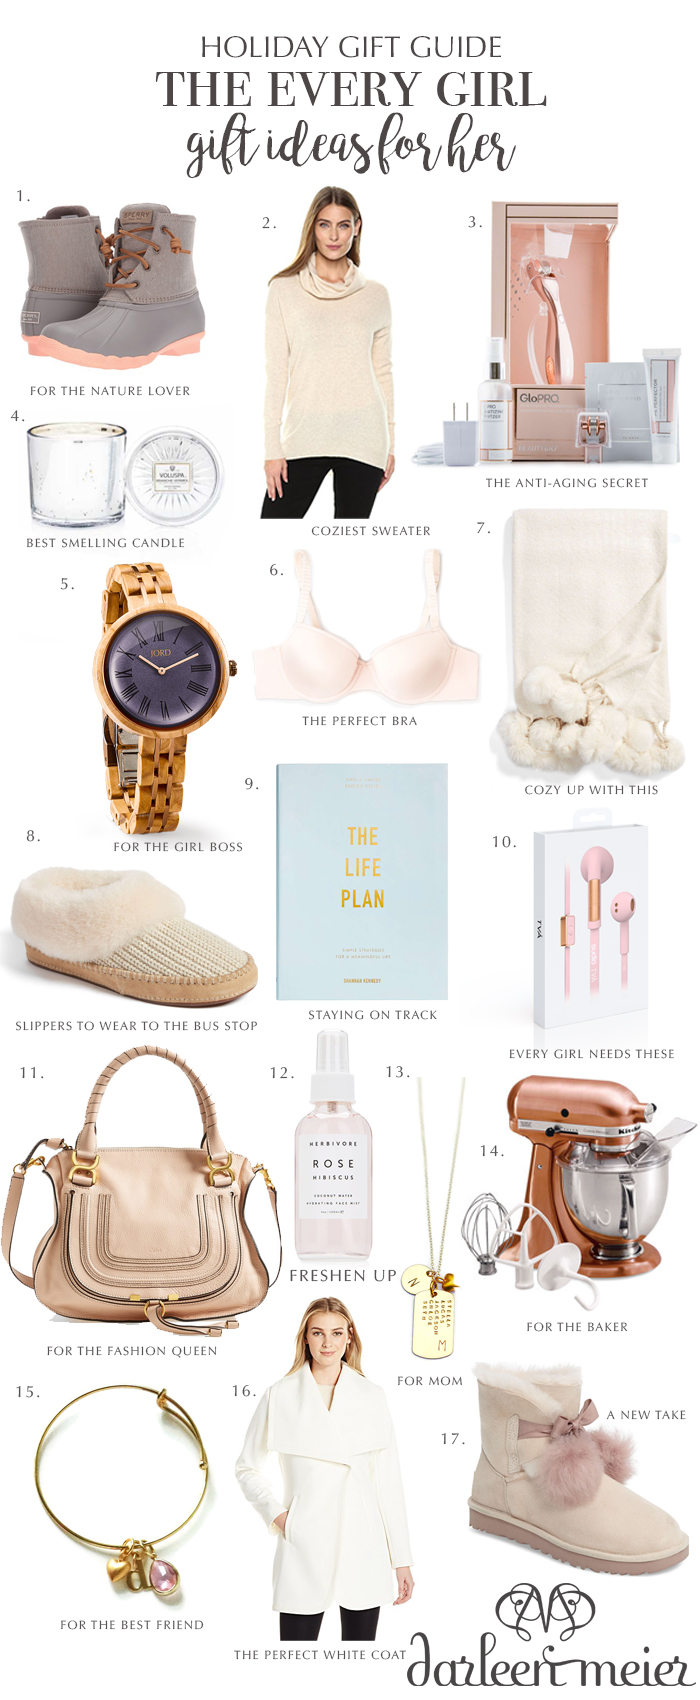 holiday gift guide 2017 for her holiday gift ideas for the every girl holiday  sc 1 st  Darling Darleen & Holiday Gift Guide for Her - Darling Darleen | A Lifestyle Design Blog